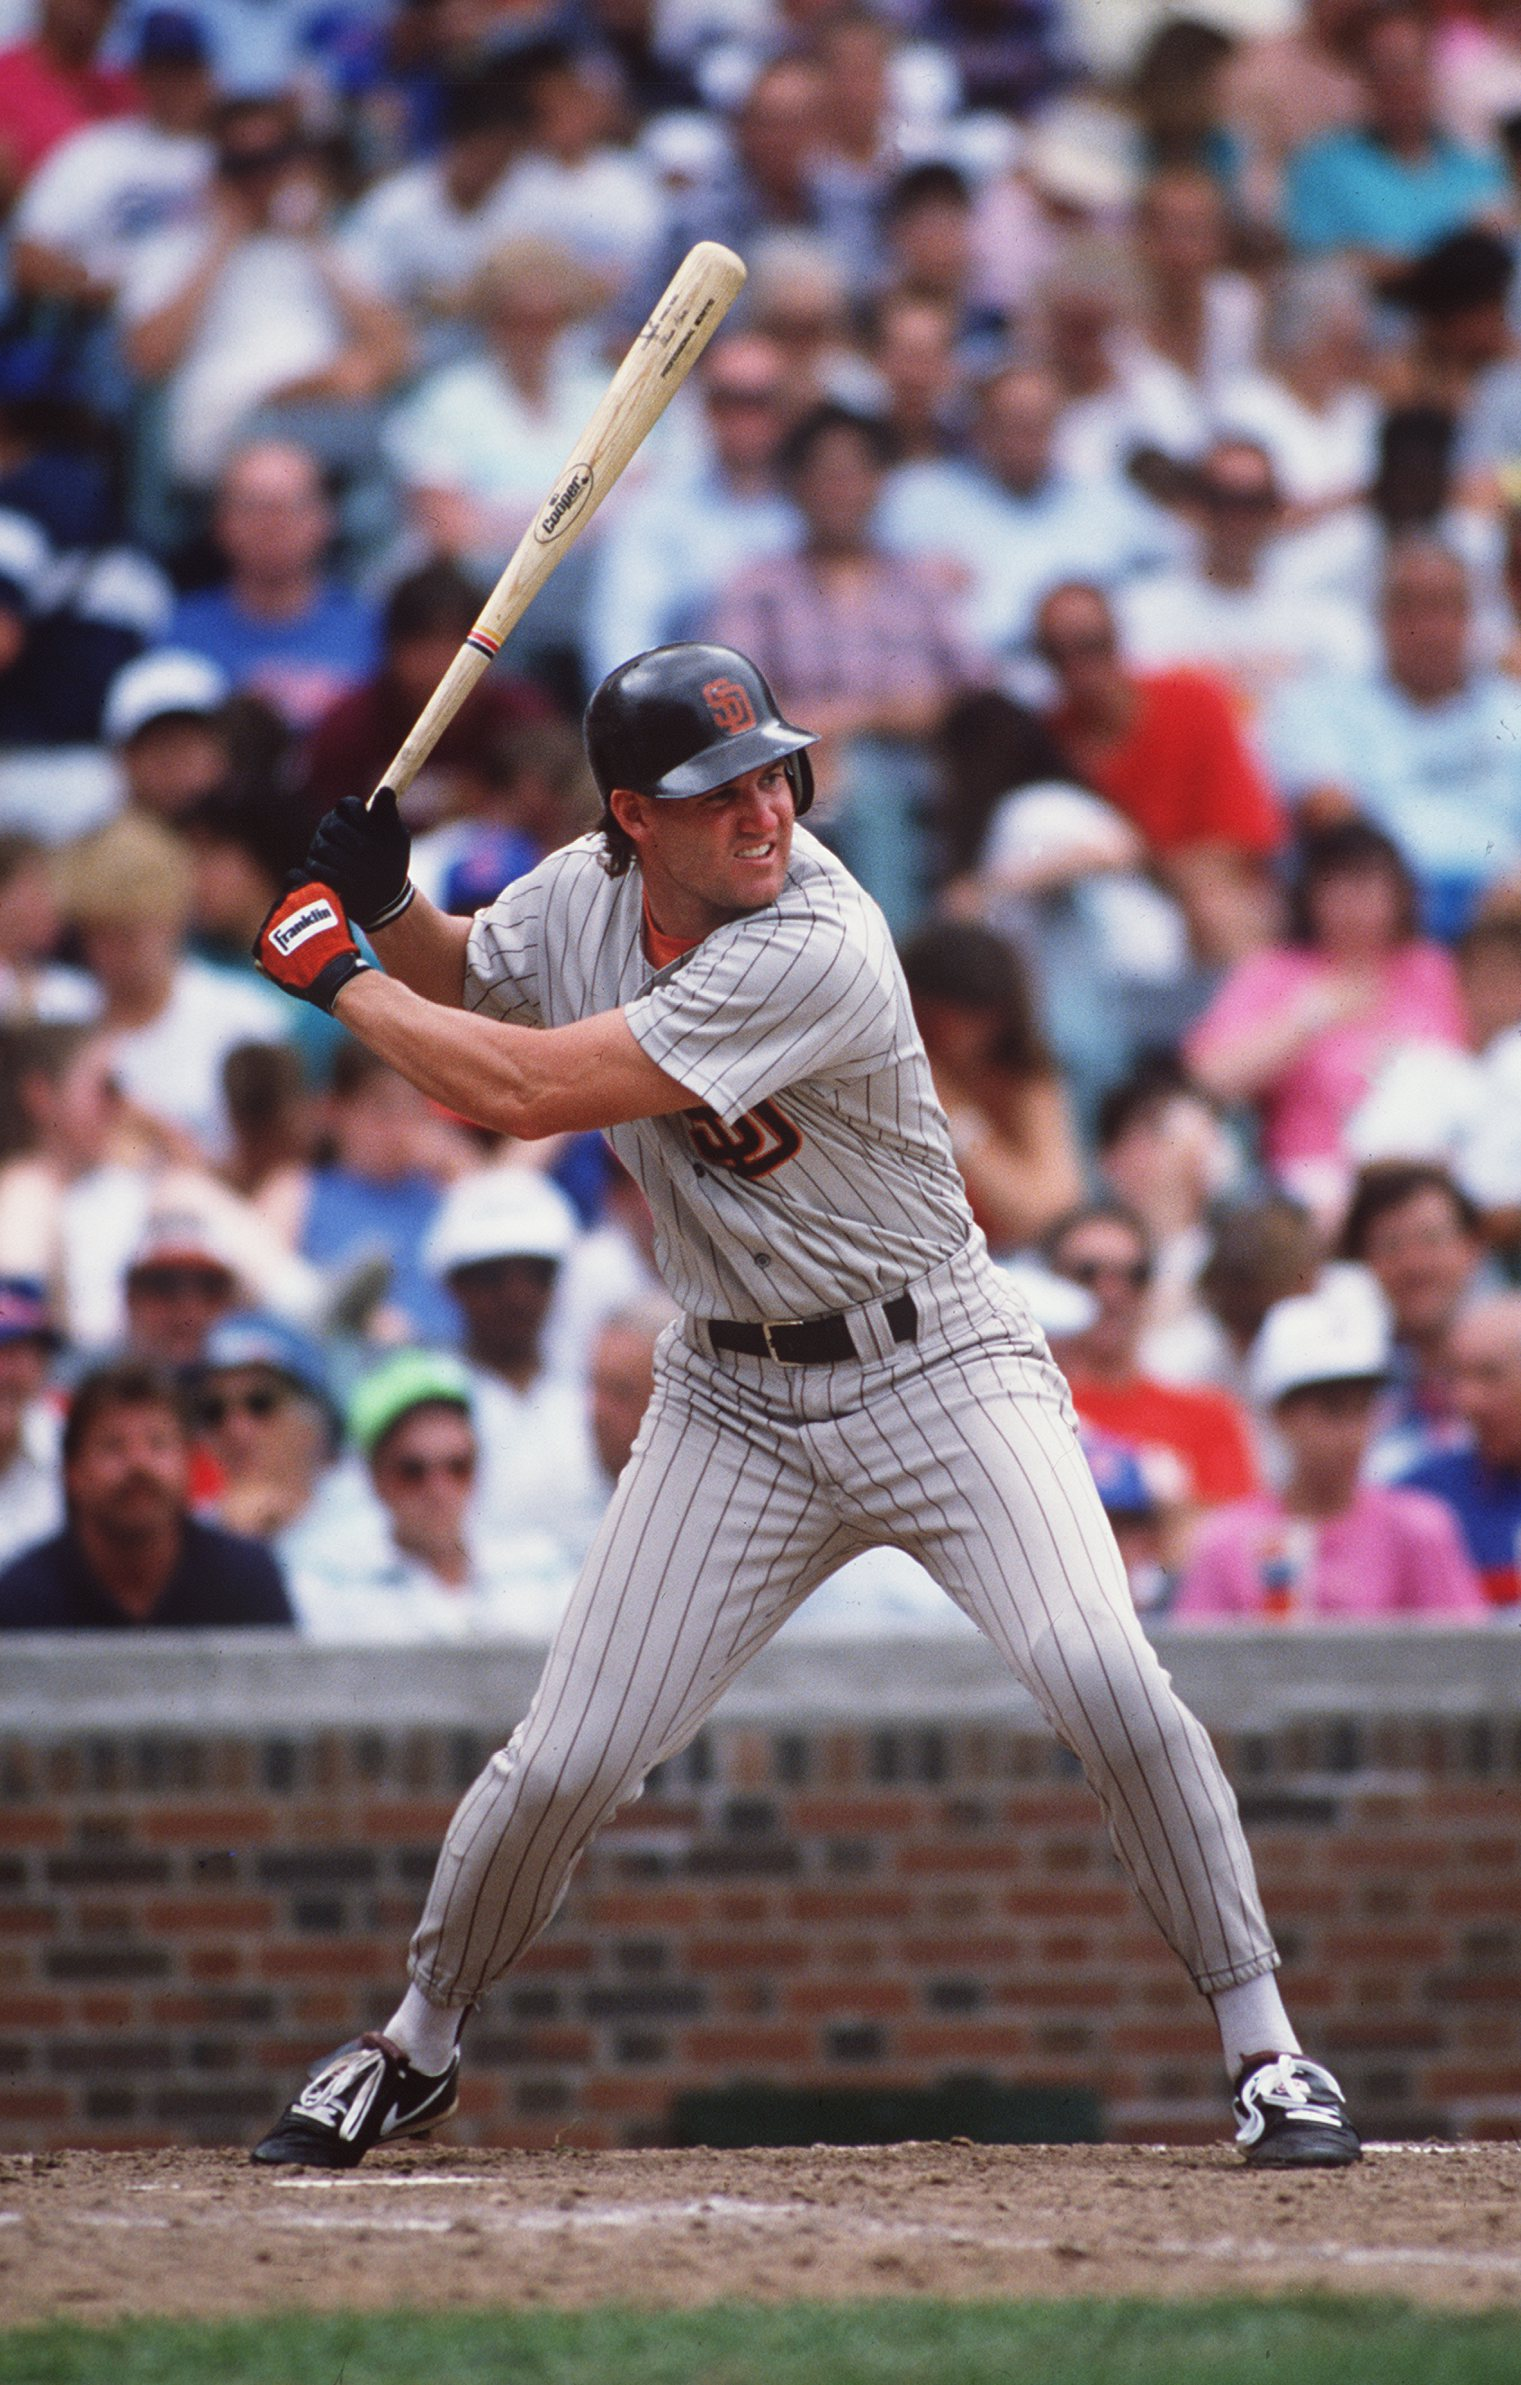 1990:  SHAWN ABNER OF THE SAN DIEGO PADRES AT BAT. Mandatory Credit: ALLSPORT/ALLSPORT